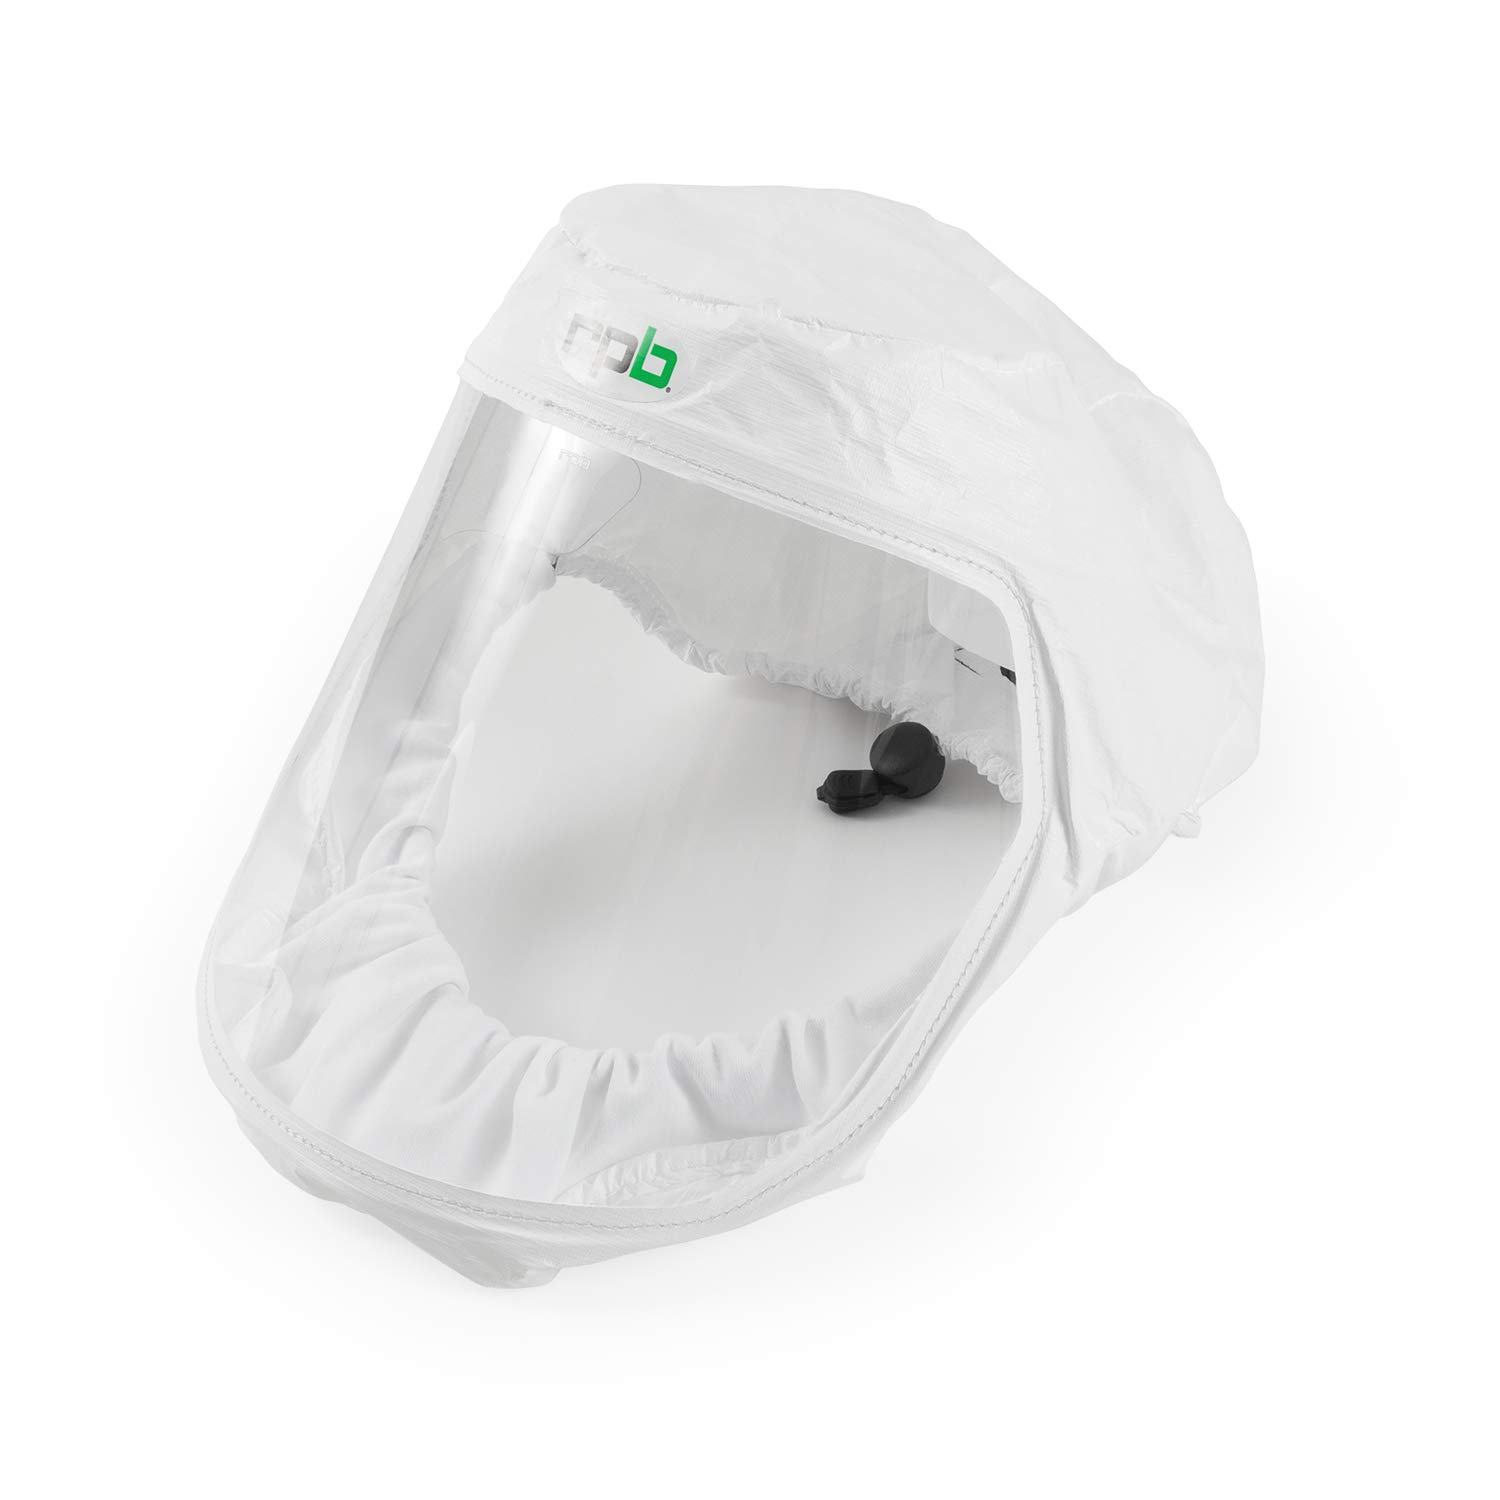 RPB Safety T200 Replacement Jacksonville Mall Max 57% OFF Tychem - Hood 17-722